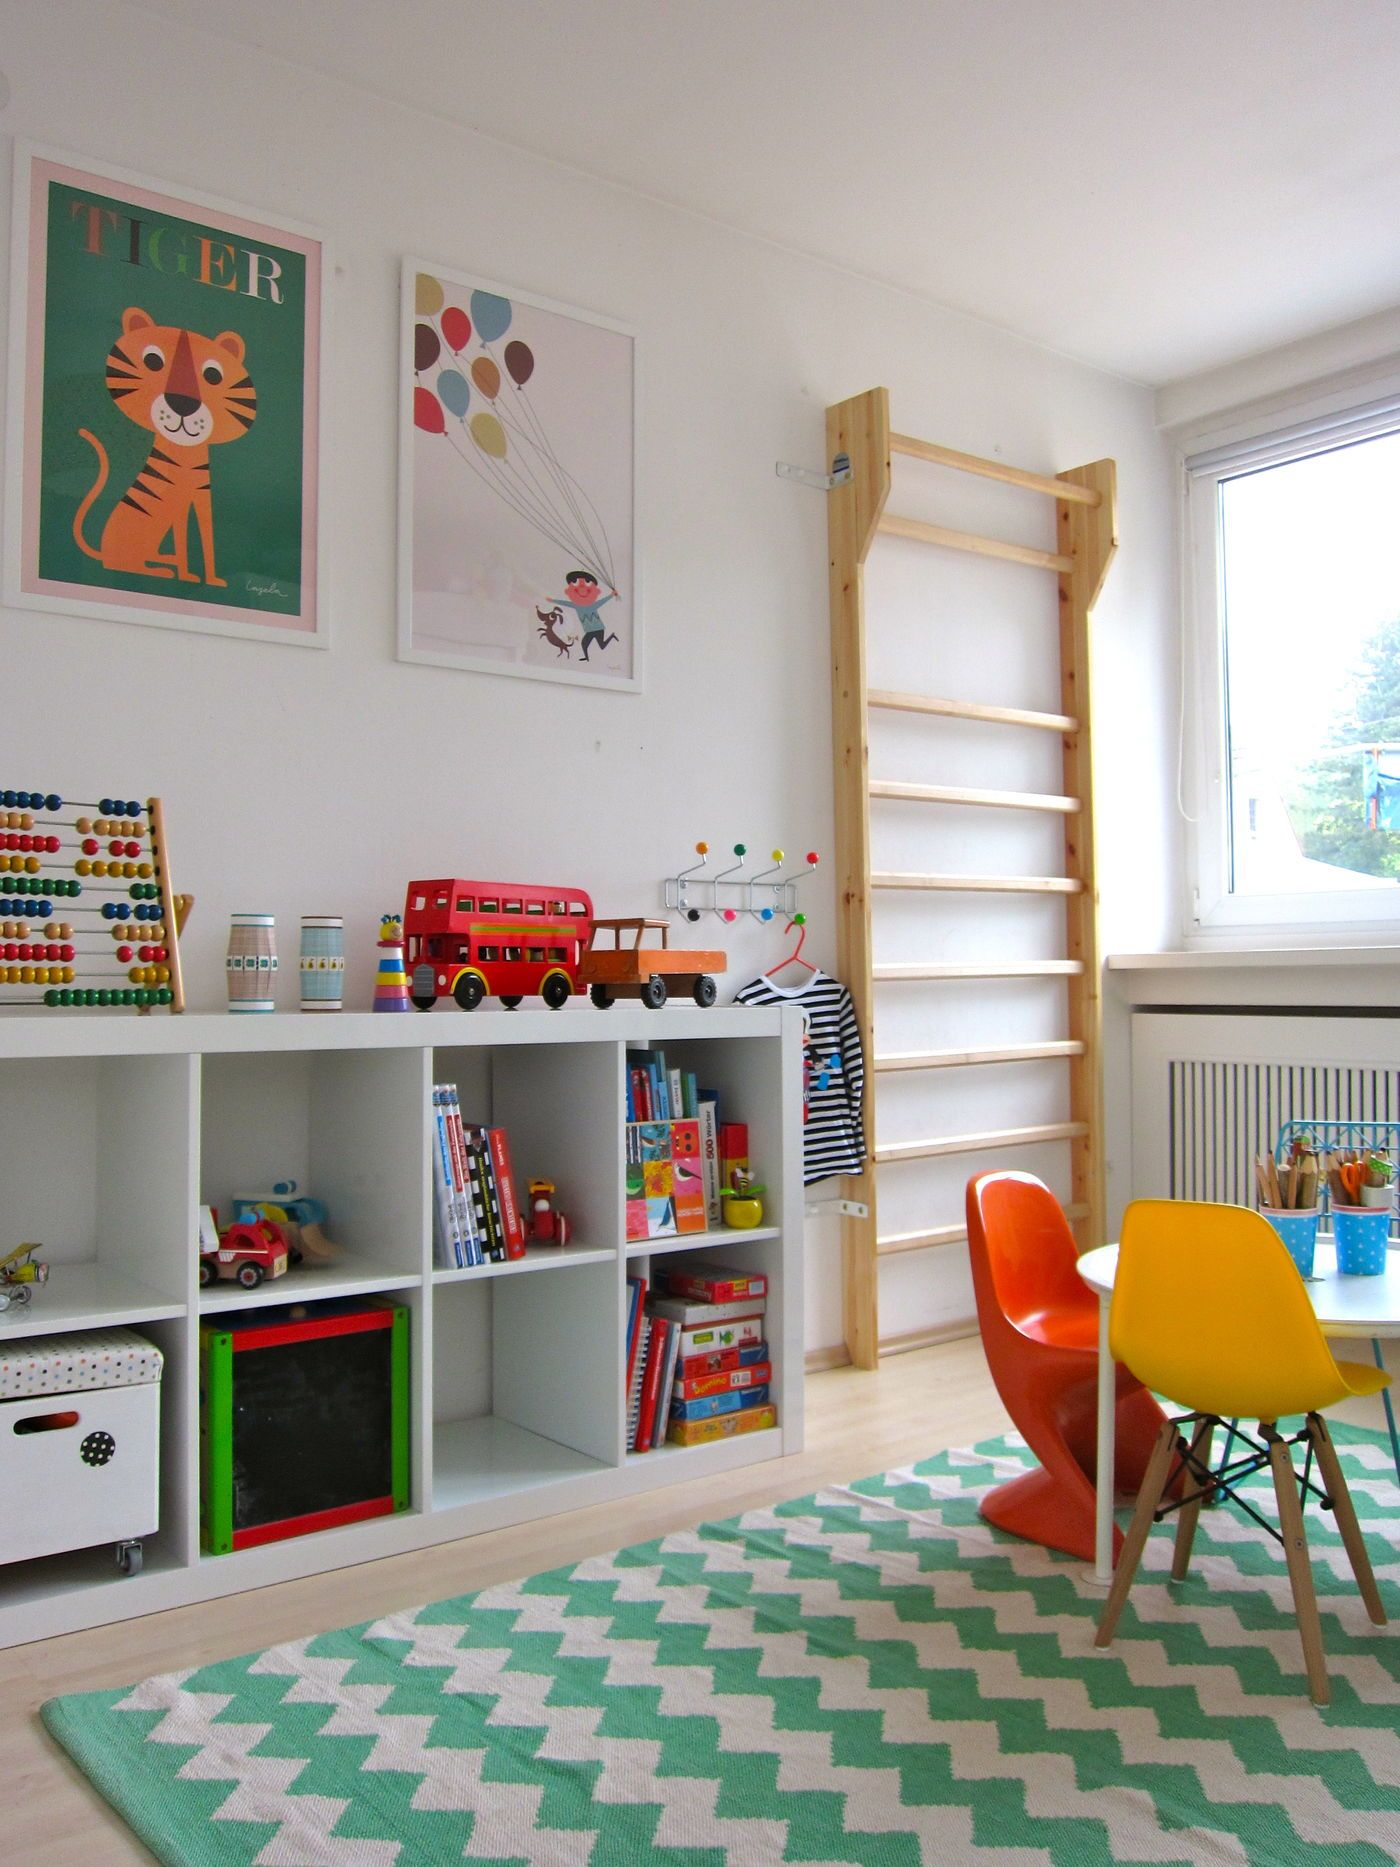 die sch nsten ideen f r dein kinderzimmer seite 5. Black Bedroom Furniture Sets. Home Design Ideas